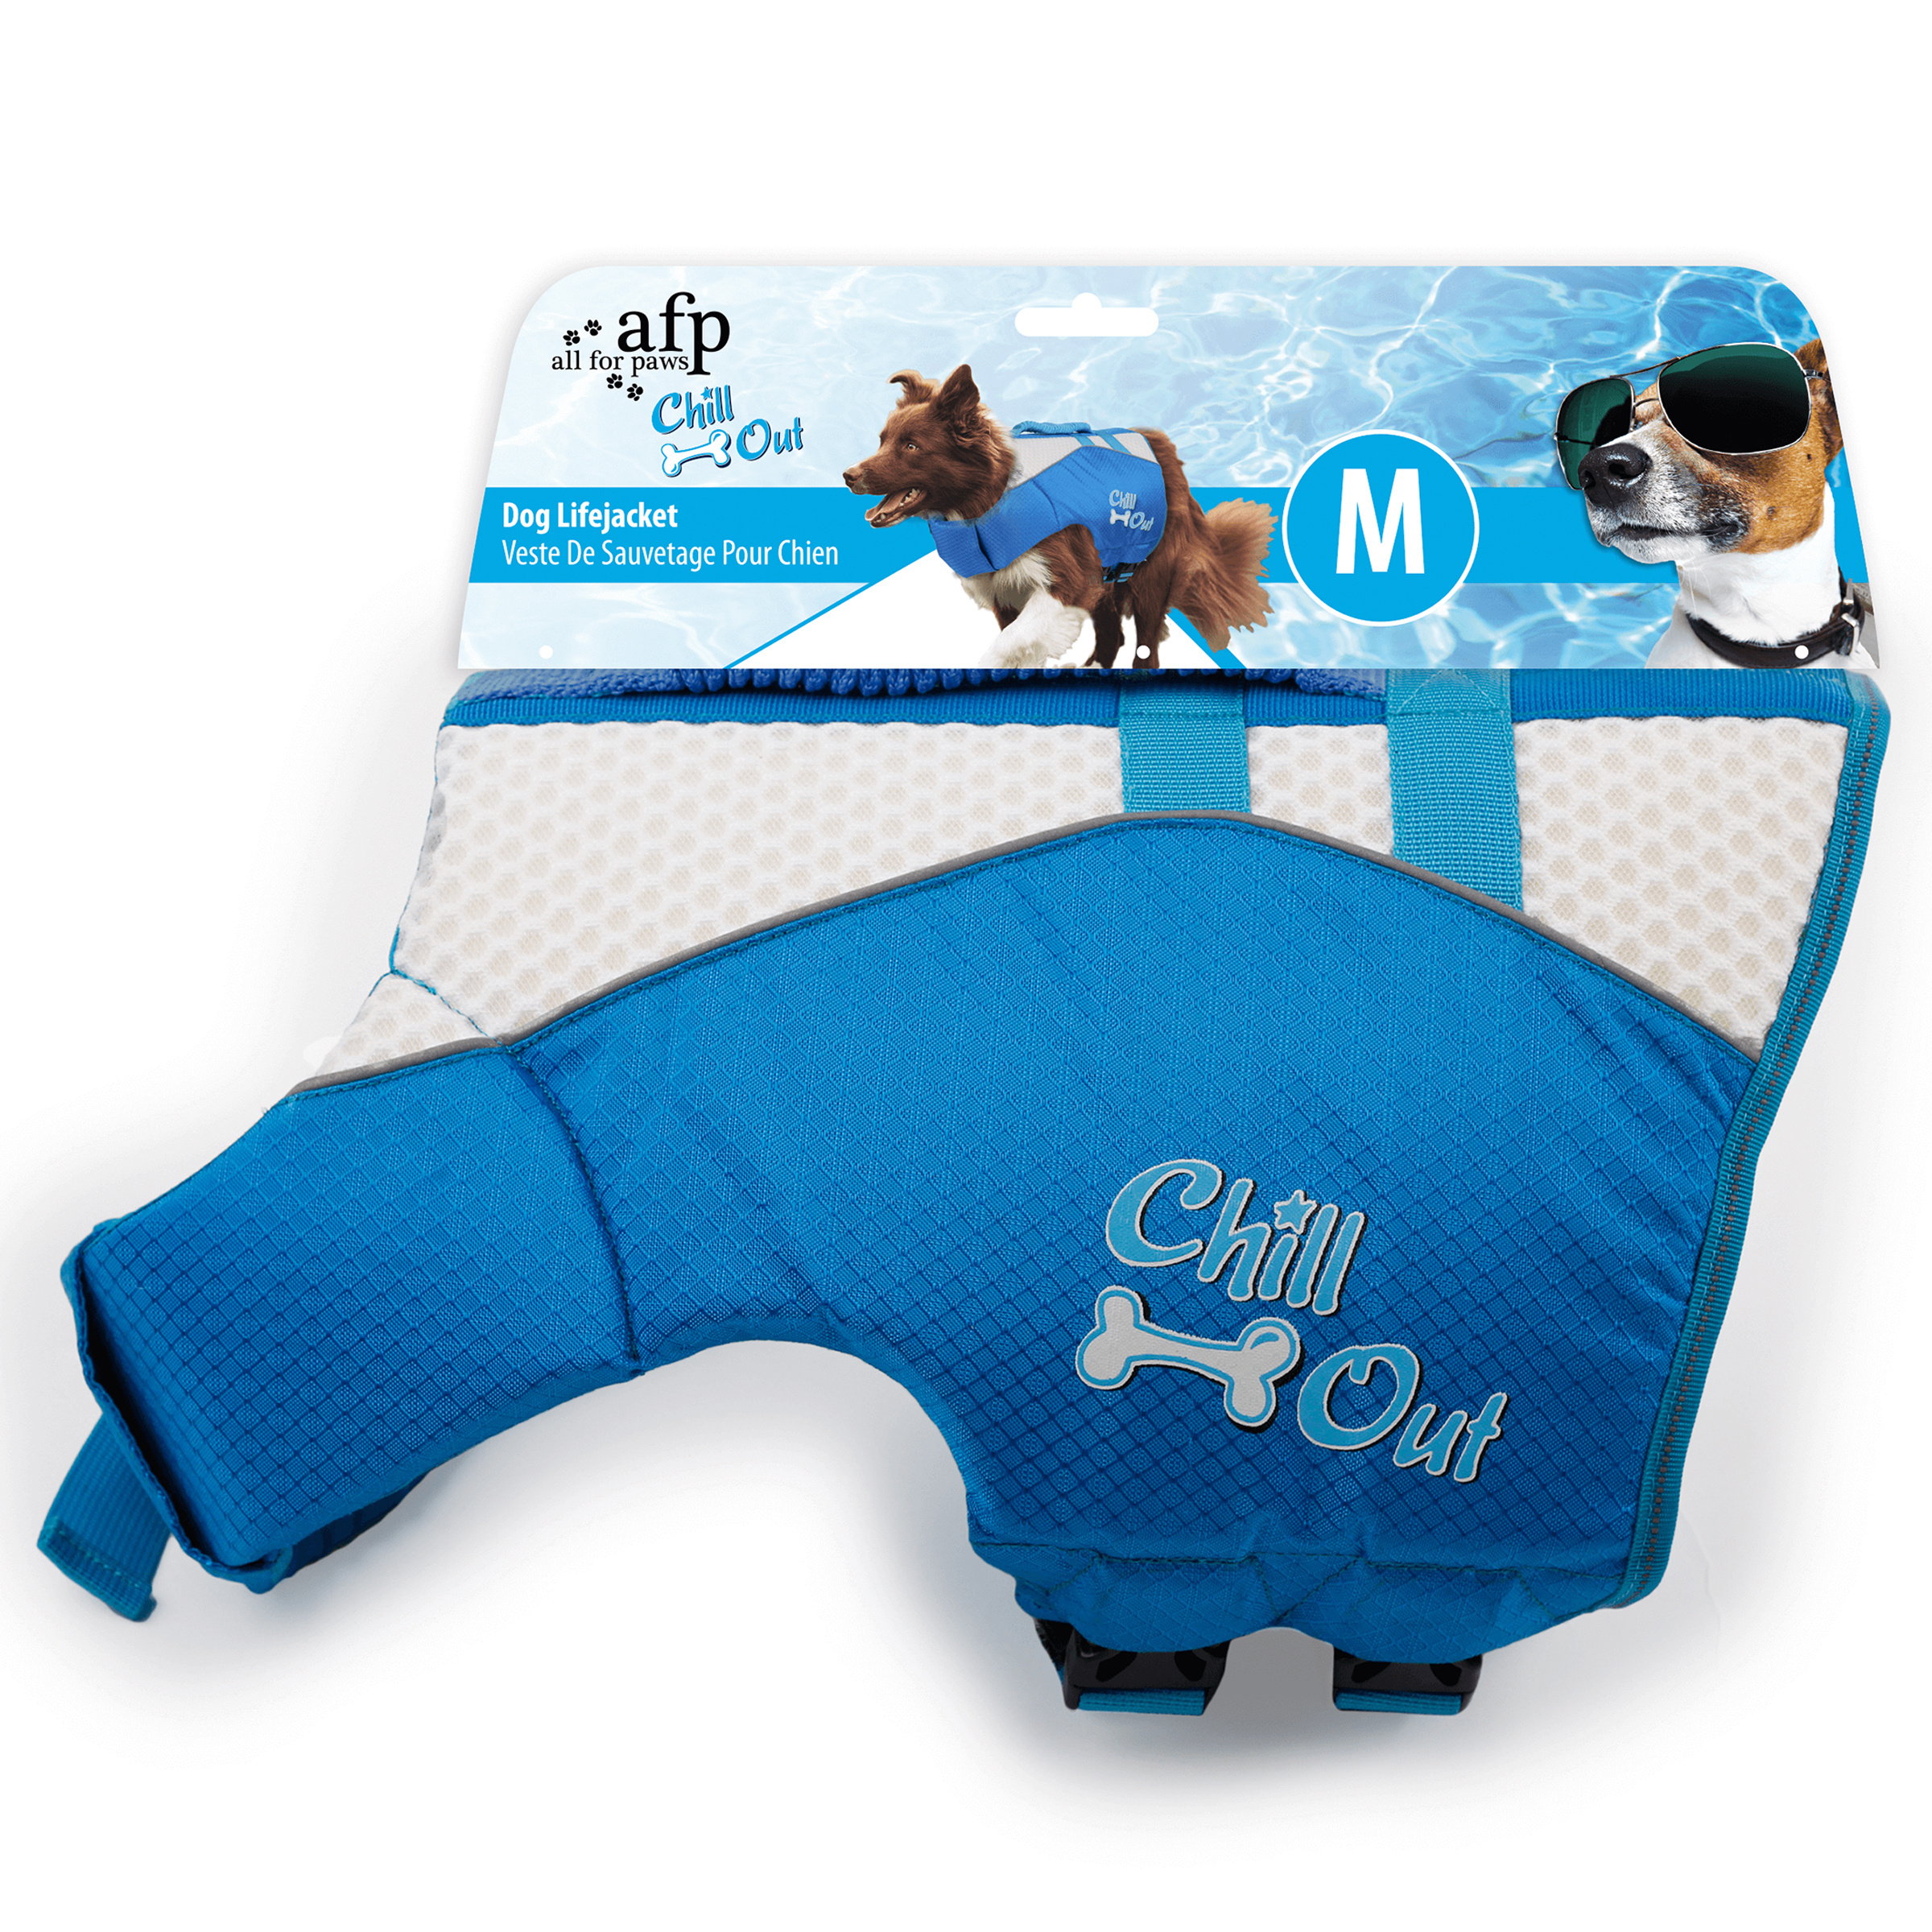 Image of All for Paws AFP Chill Out Schwimmweste Hund mit Griff M 25-39kg